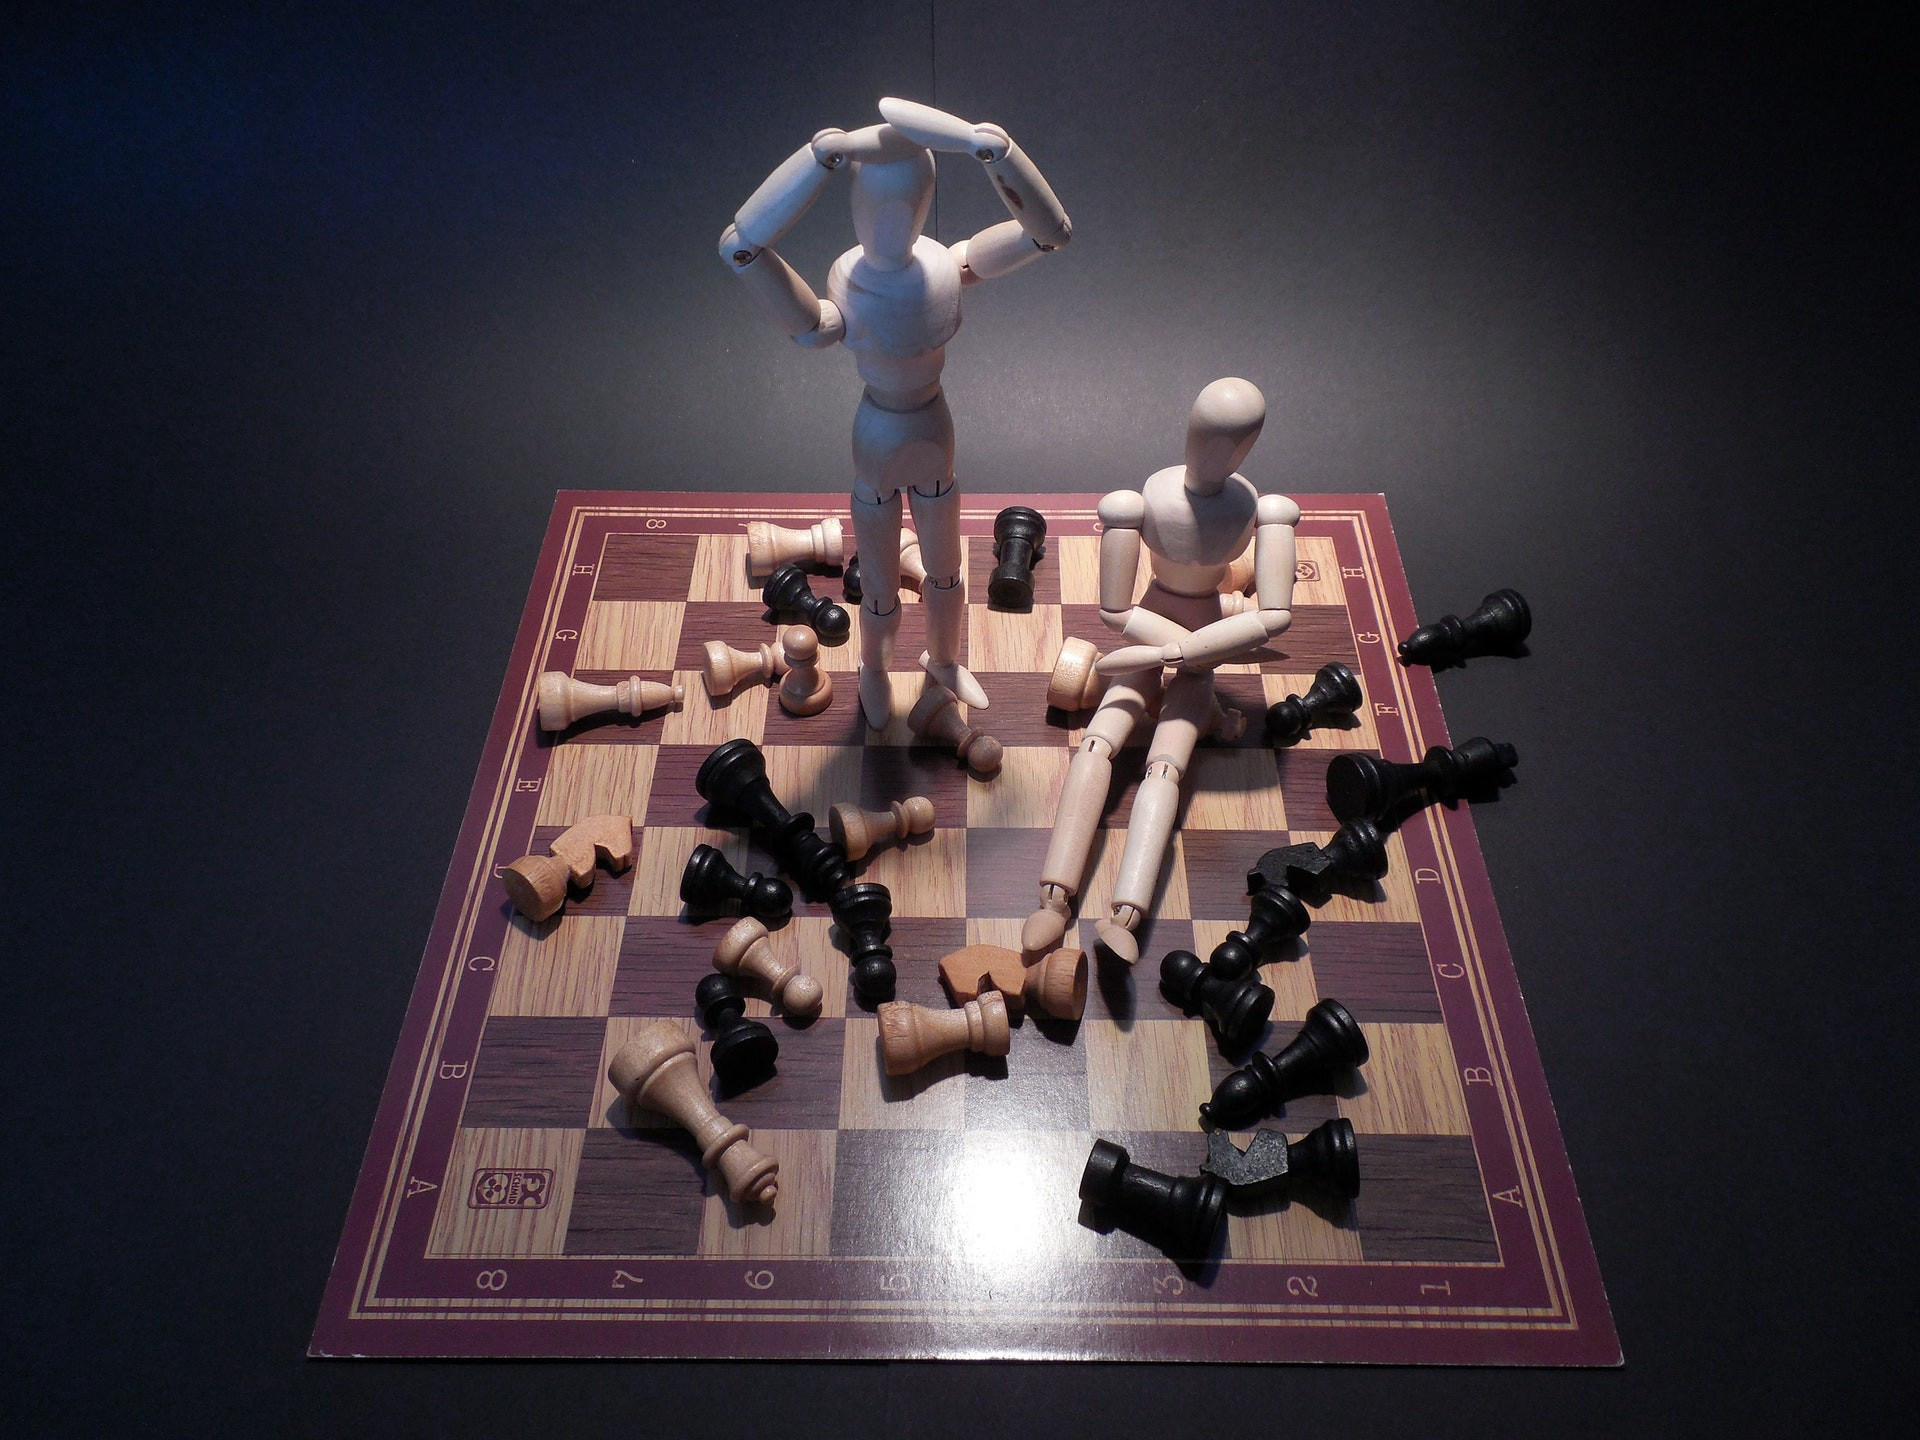 Frustrated wooden models on a chess board